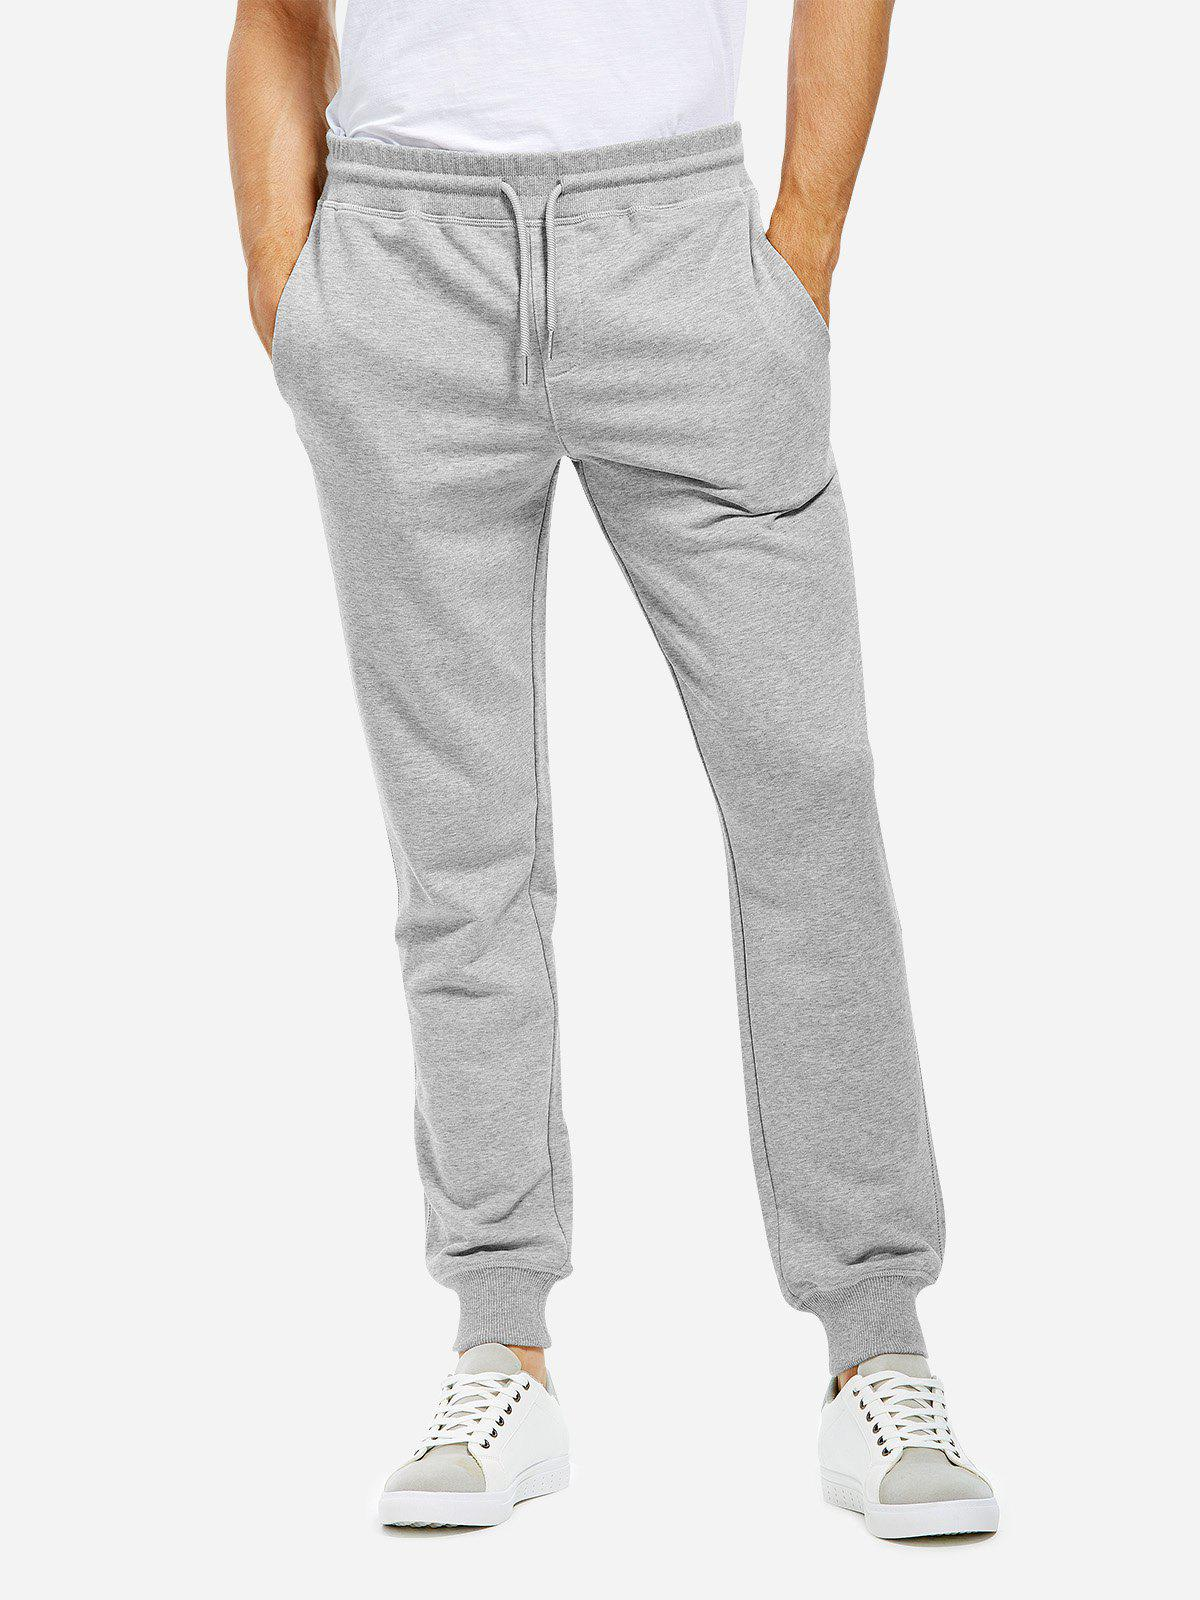 Cotton Sweatpants - HEATHER GRAY L